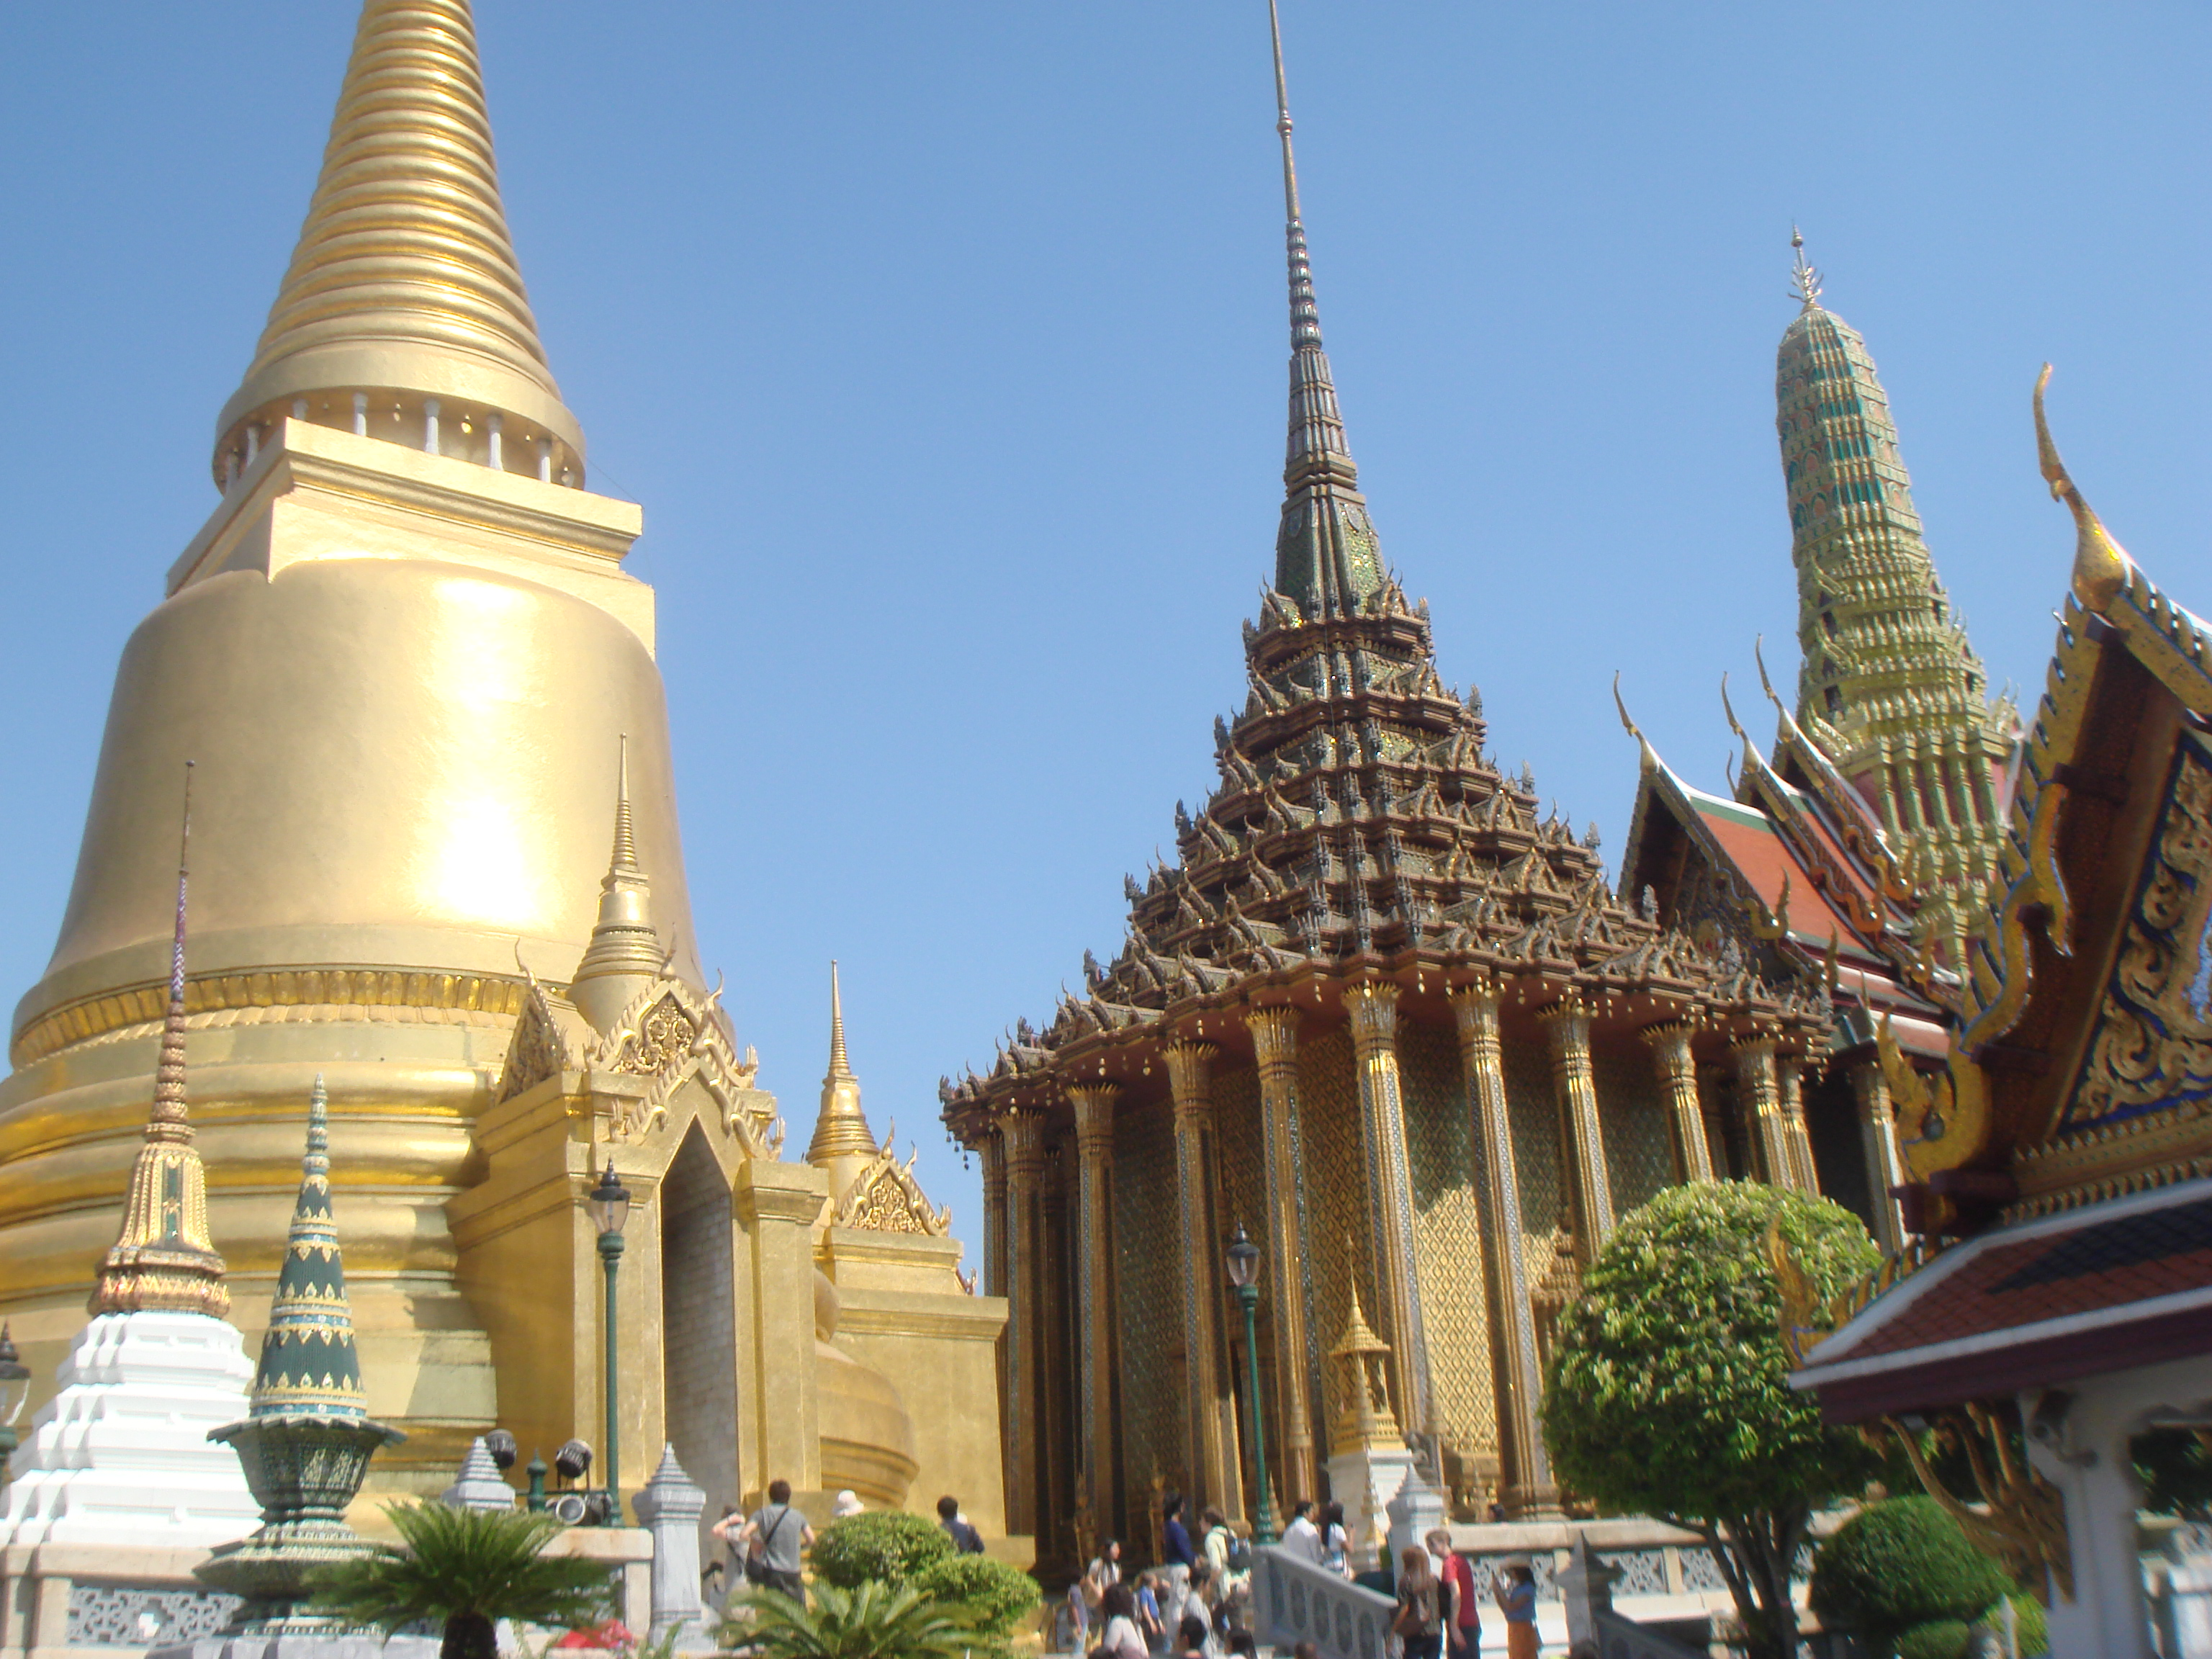 One Day in Bangkok: The Grand Palace